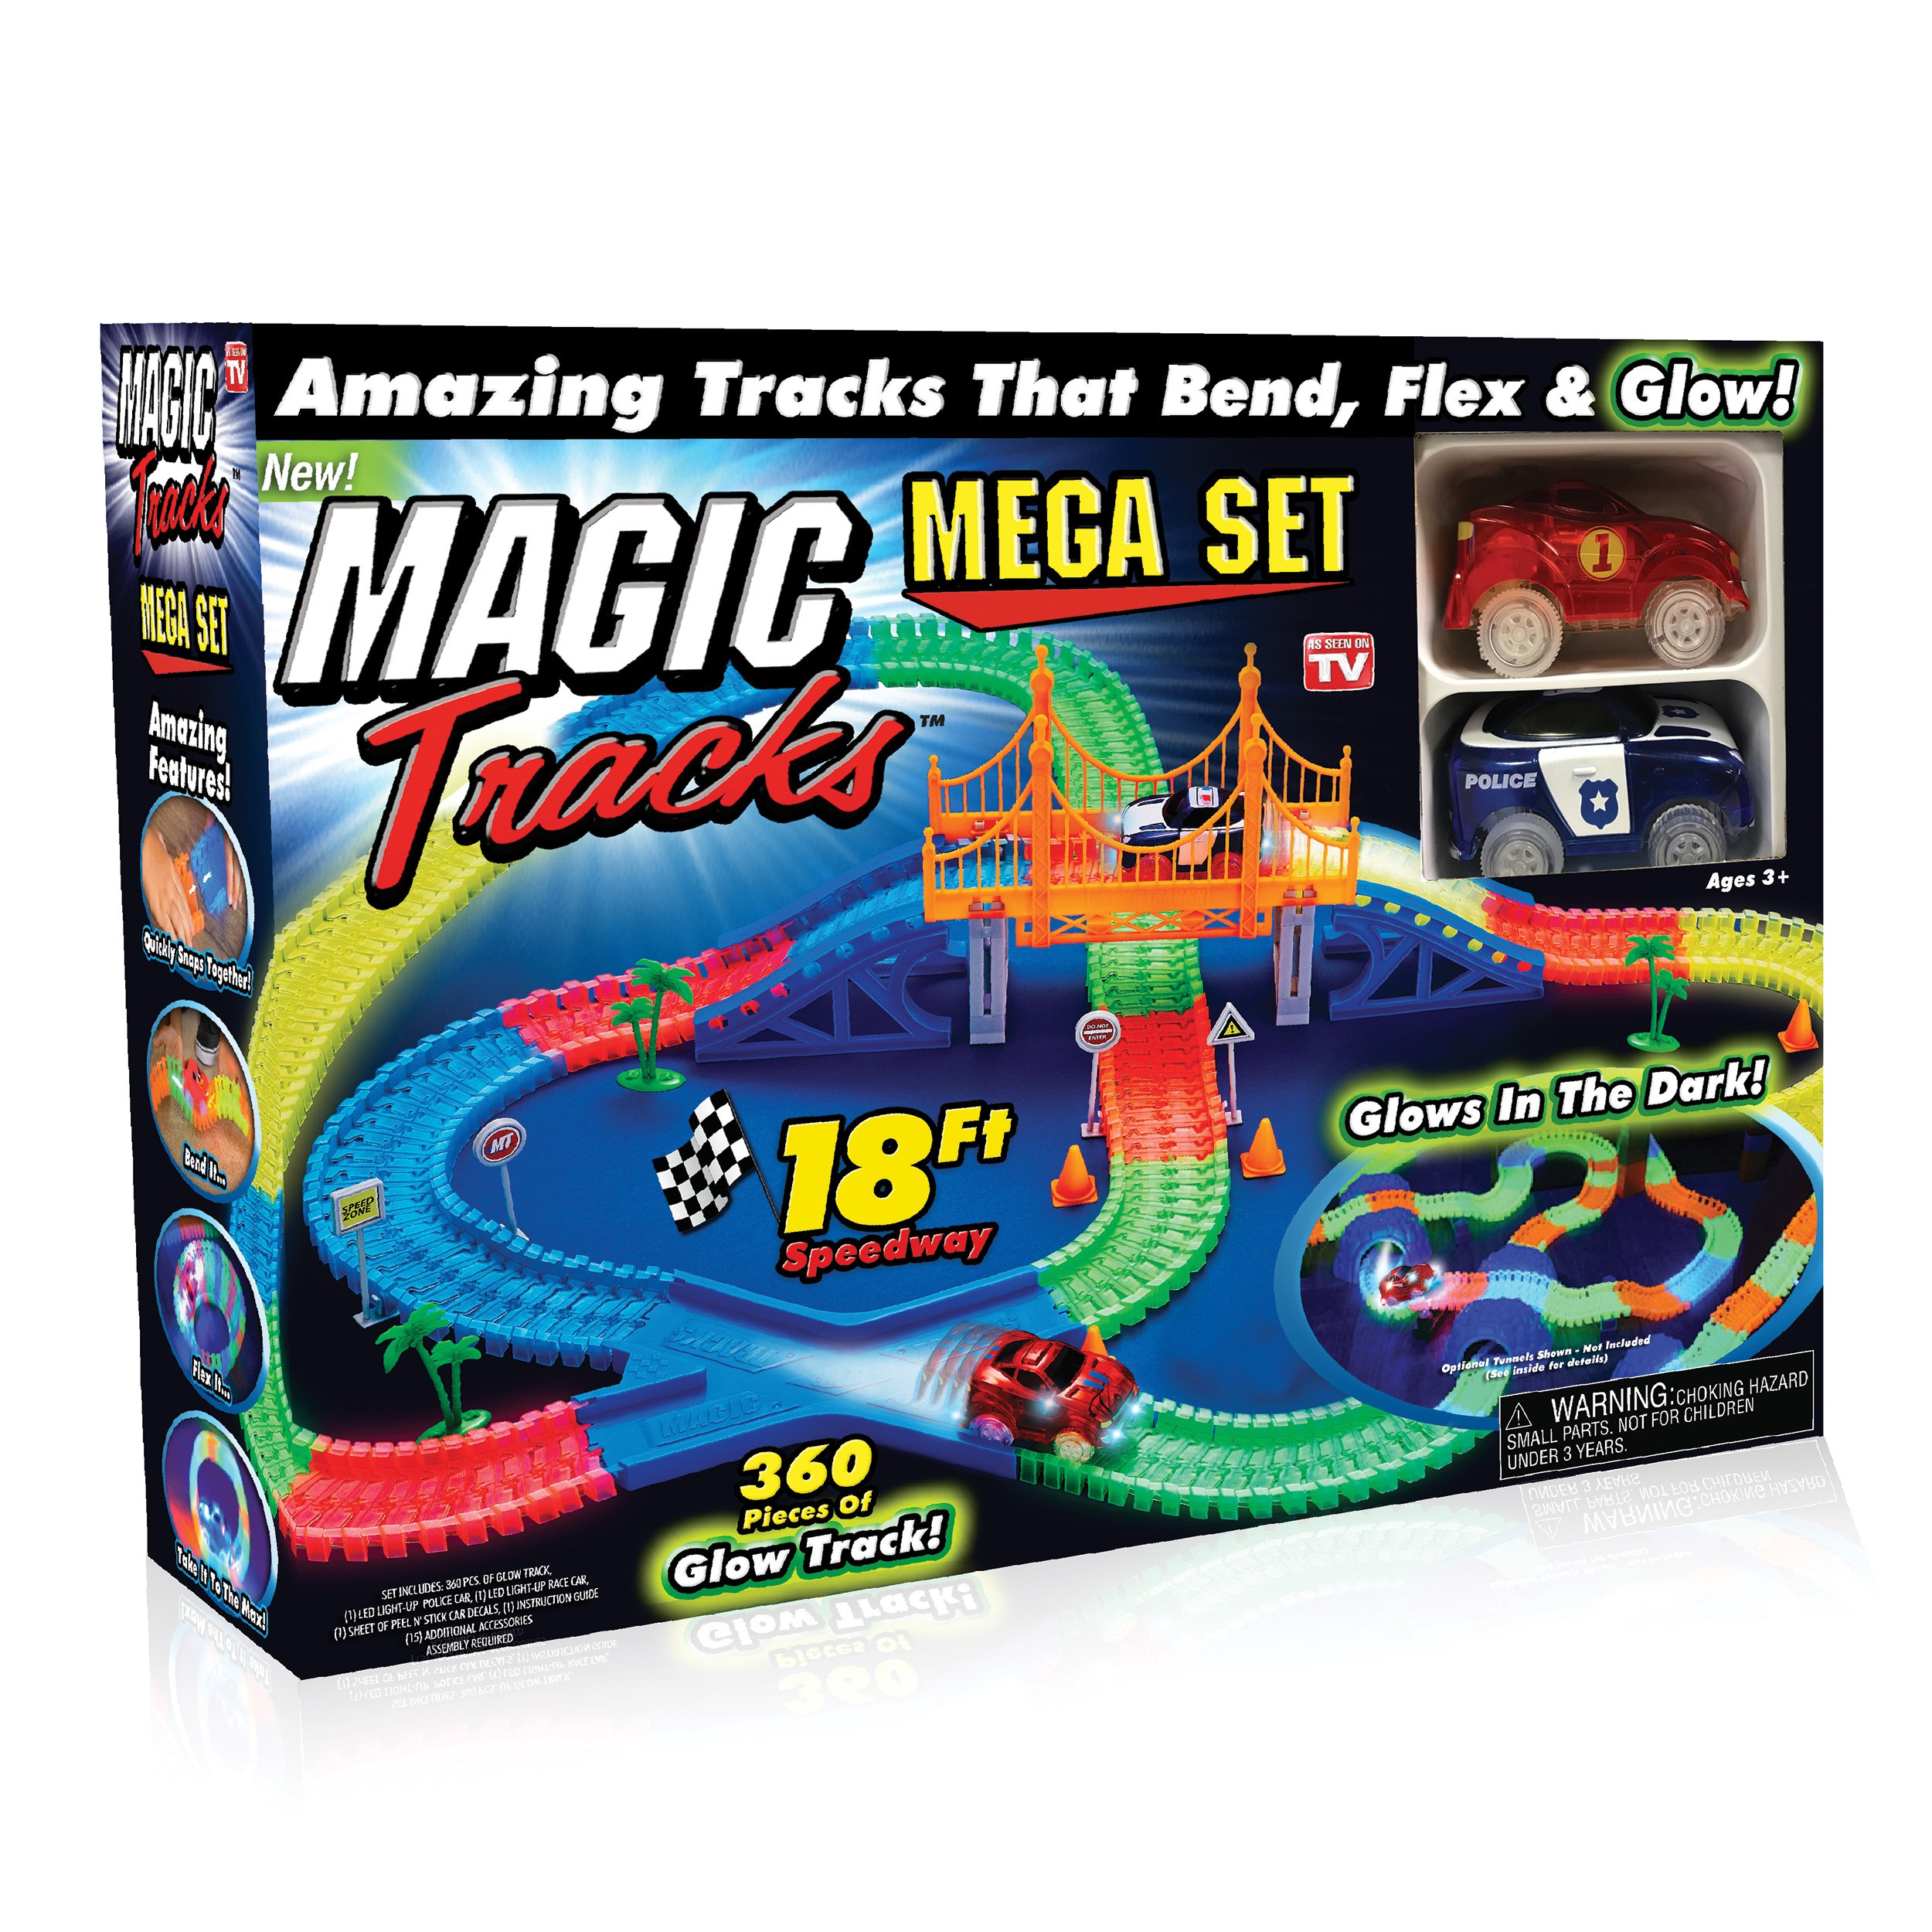 Ontel Magic Tracks Mega Set with 2 LED Race Car and 18 ft. of Flexible, Bendable Glow in the Dark Racetrack, As Seen on TV by Ontel